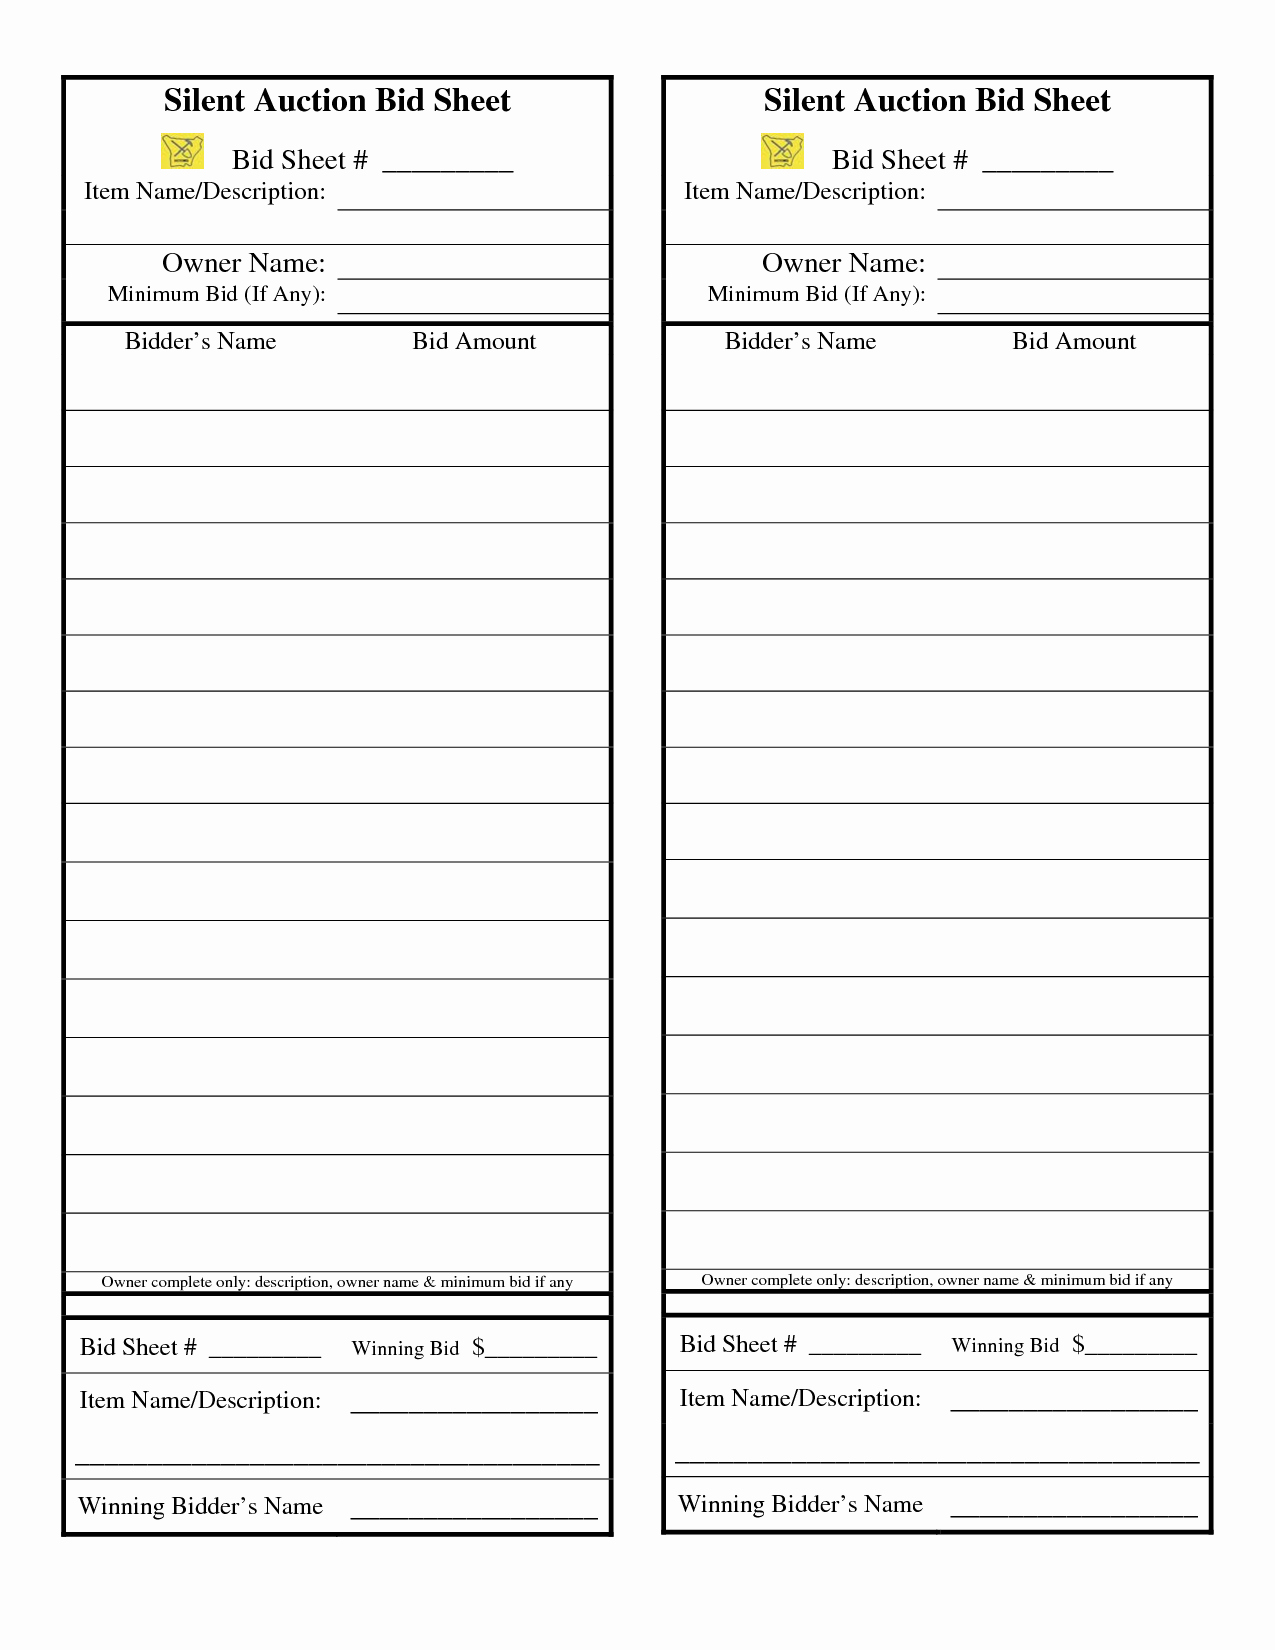 Silent Auction Bid Sheet Word Fresh Template for Silent Auction Bid Sheet